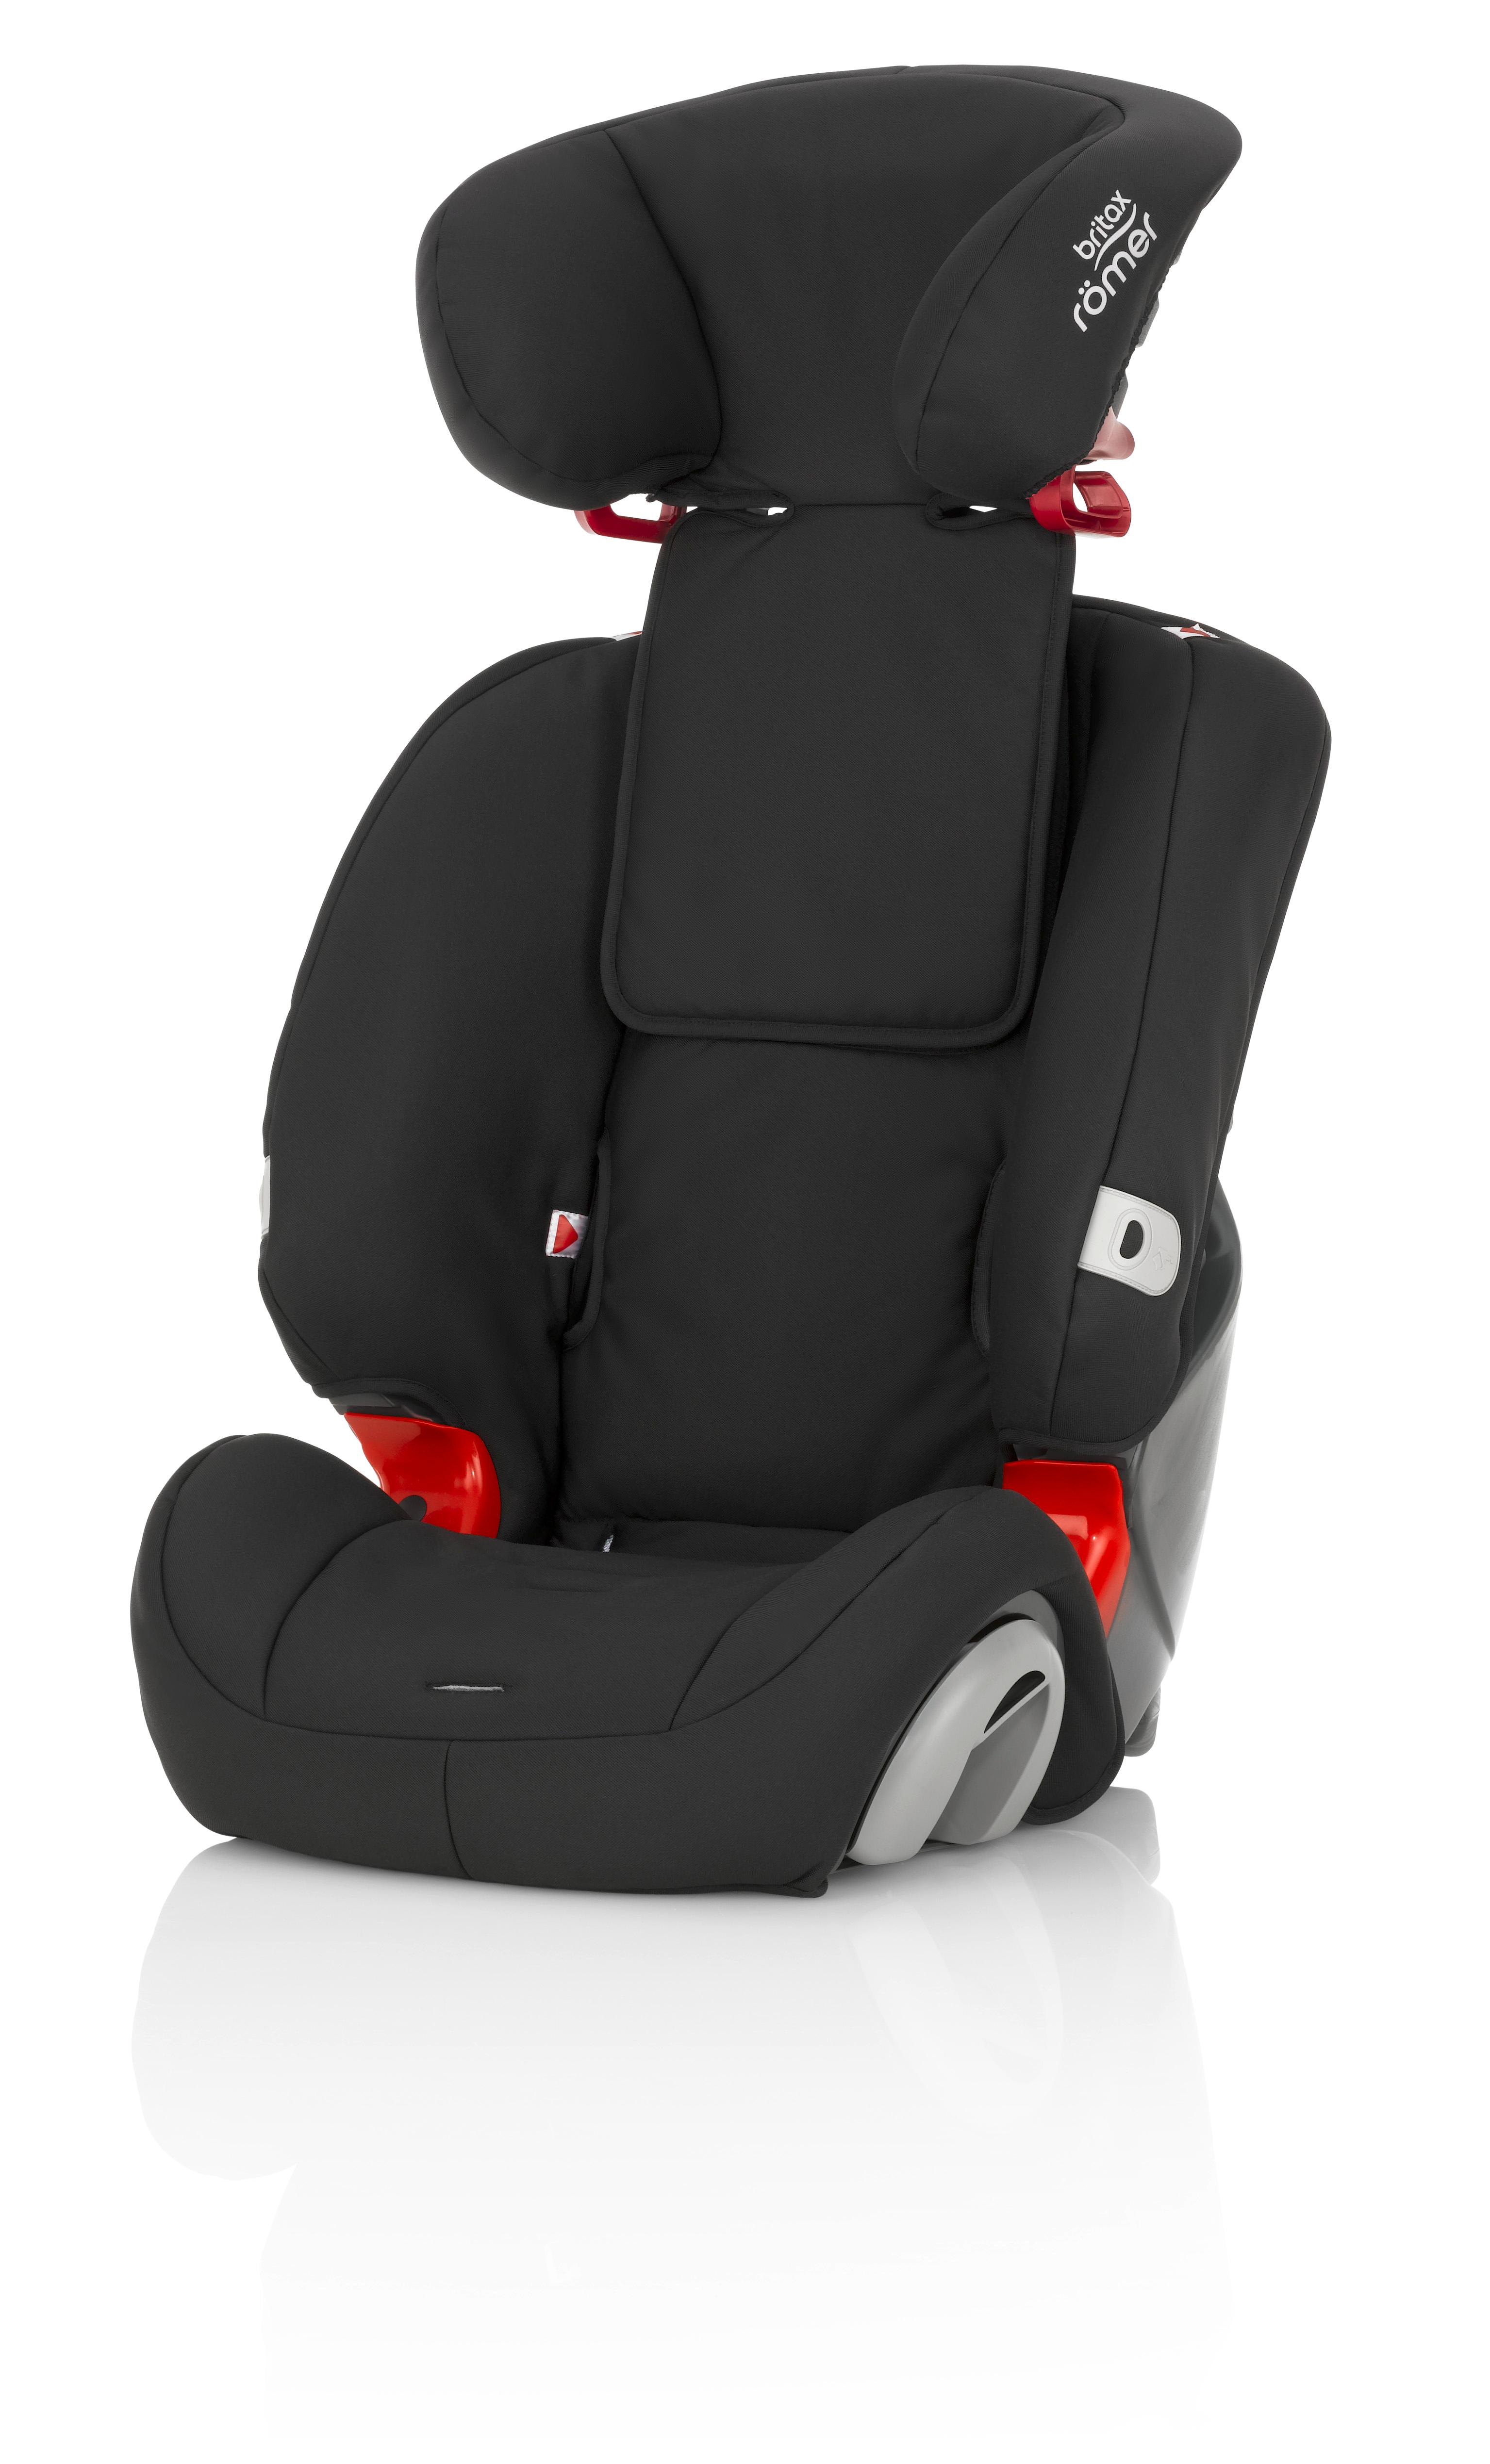 Britax Romer Evolva Car Seat, Group 1/2/3 - Black Thunder: Amazon.co